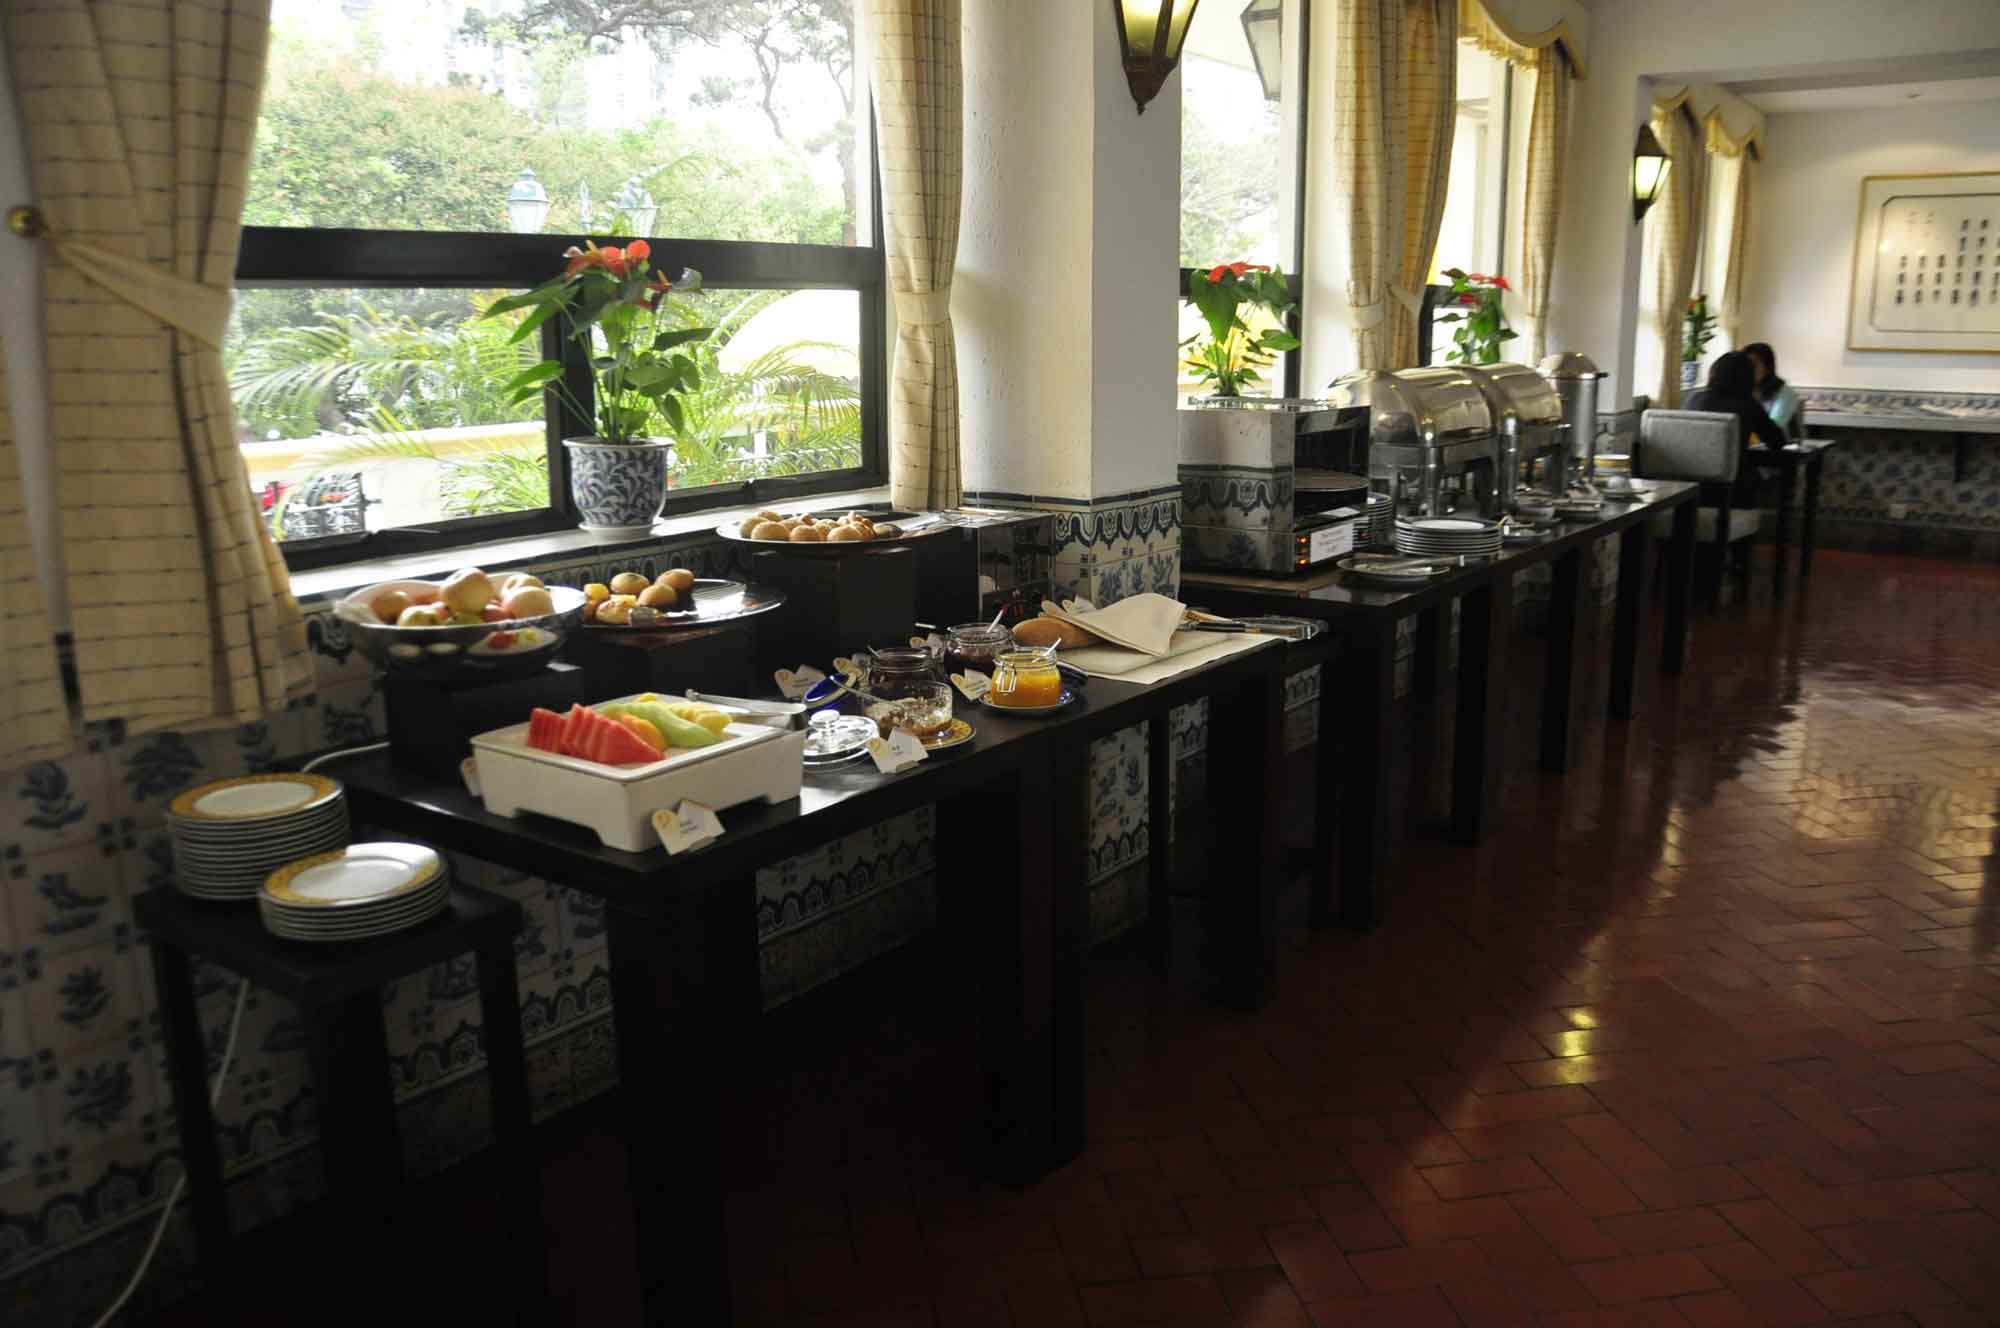 Pousada de Mong Ha buffet breakfast